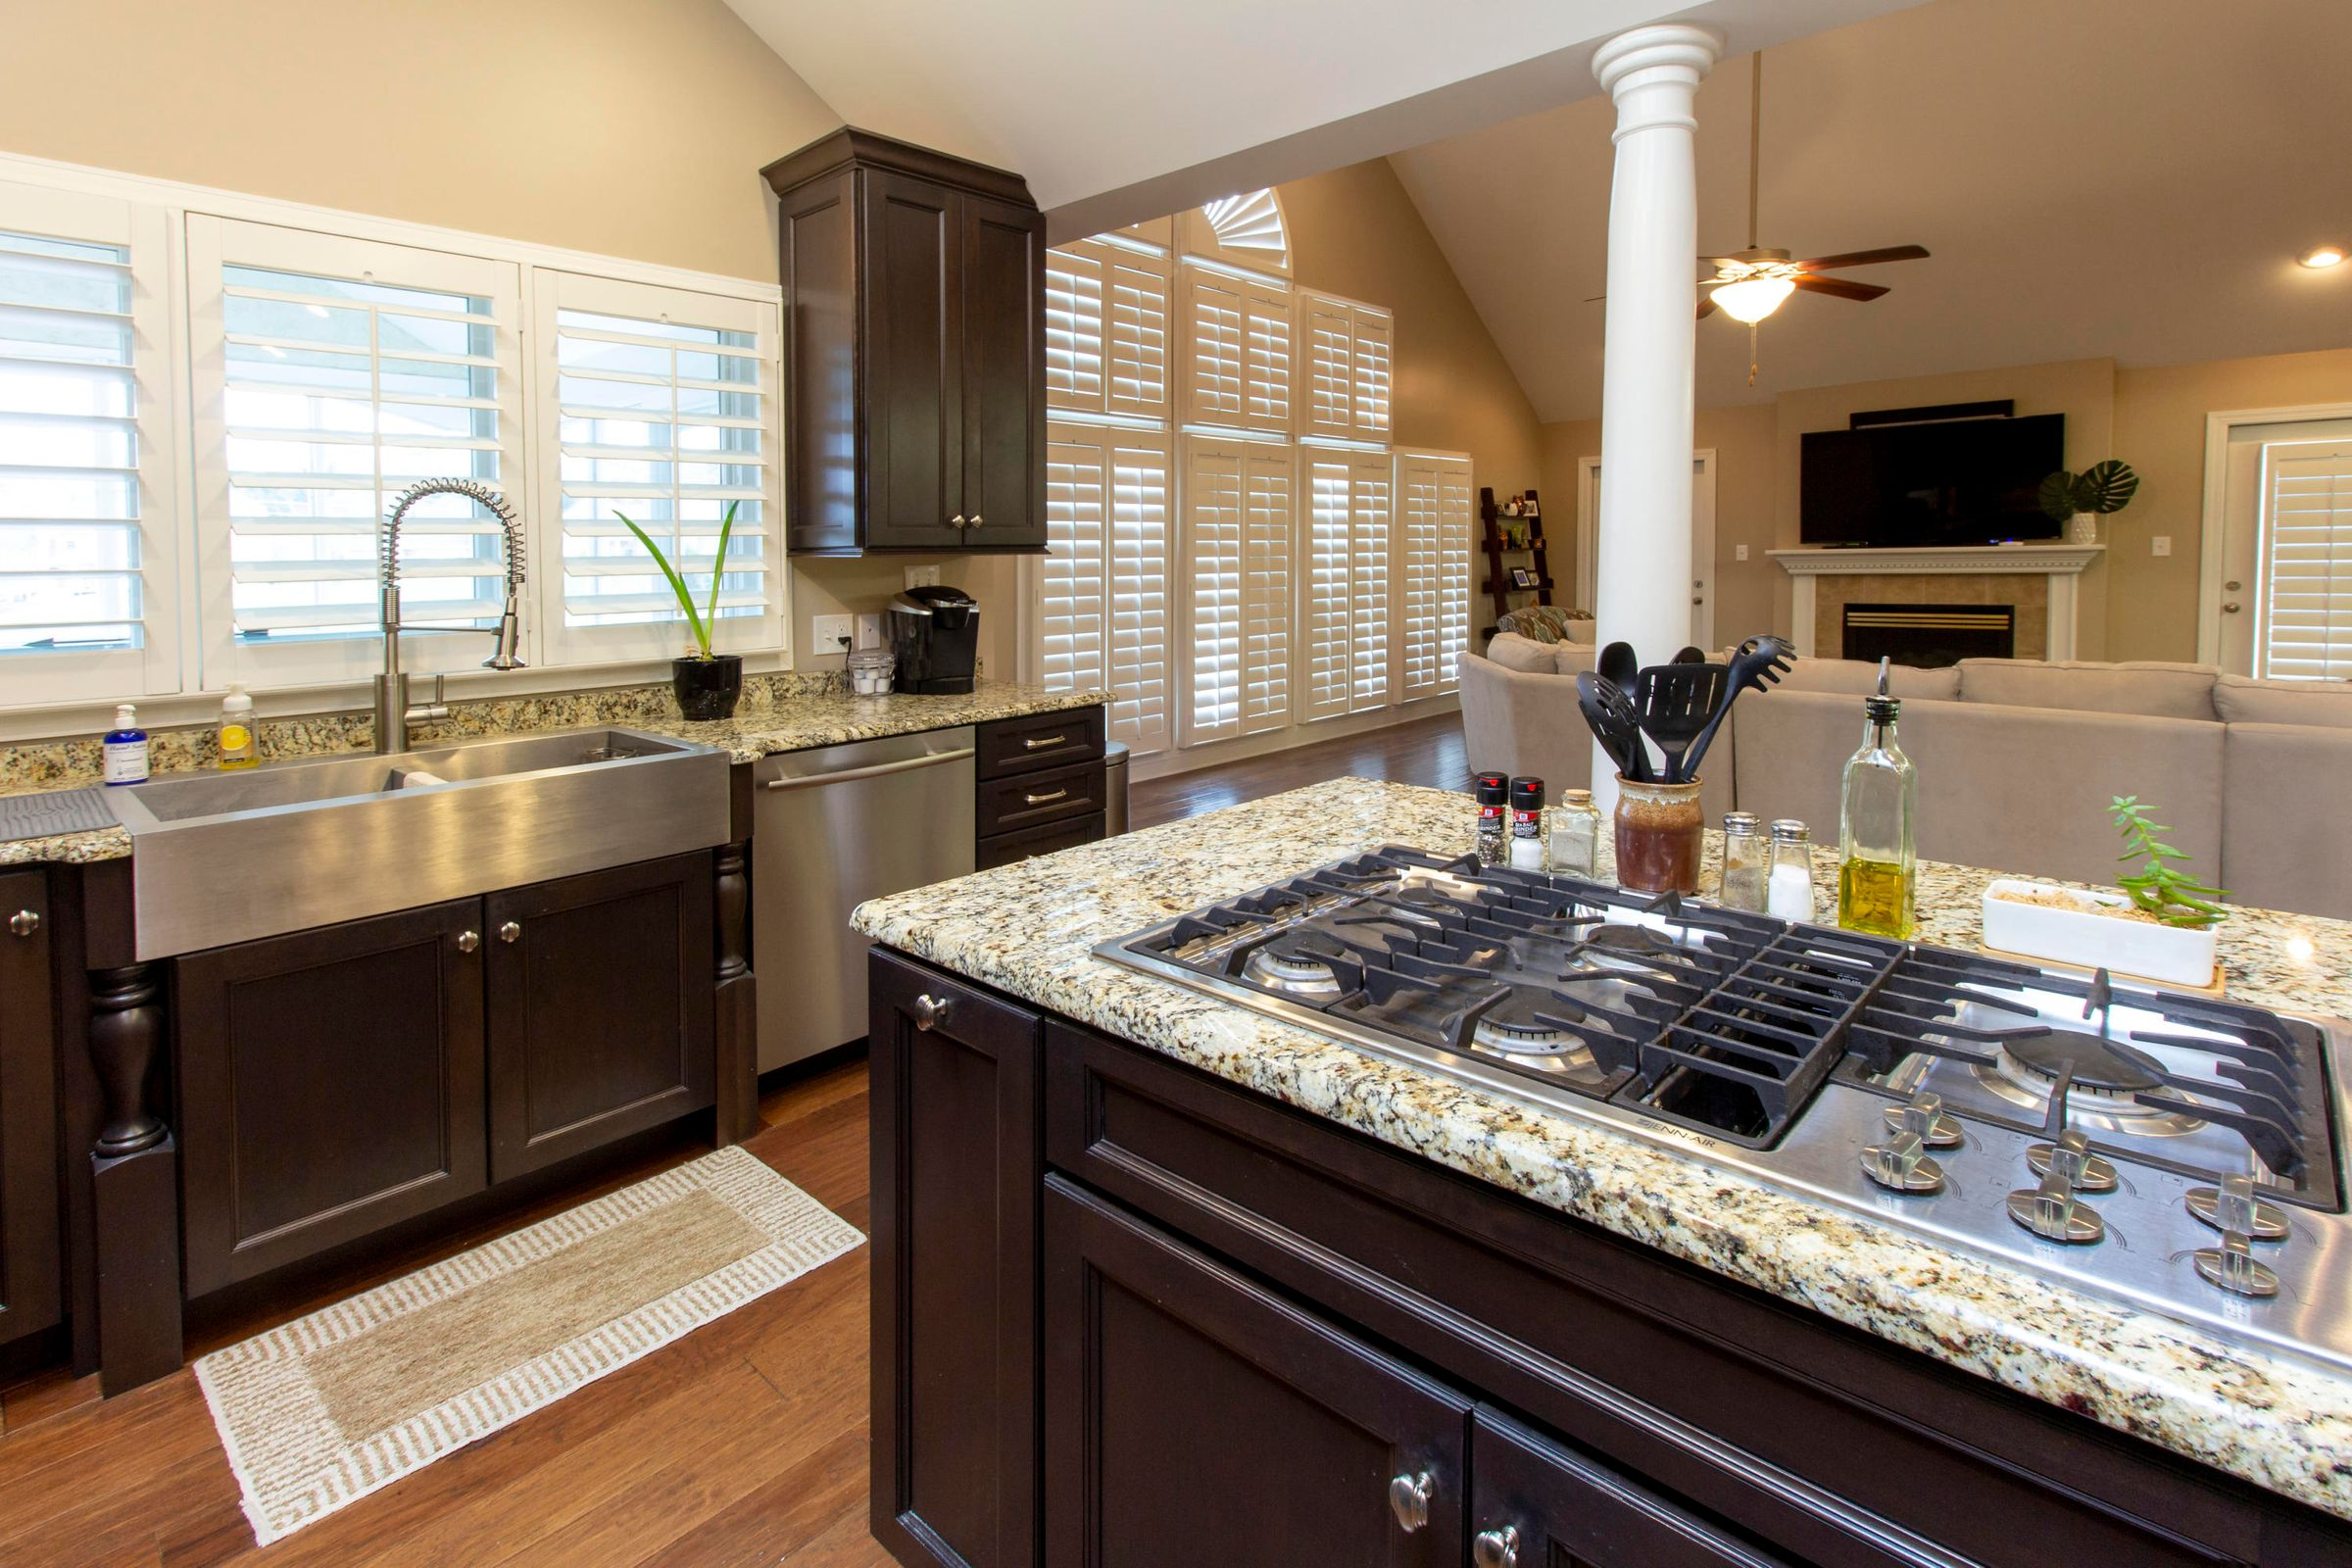 Gas Stove-Top, Stainless Appliances